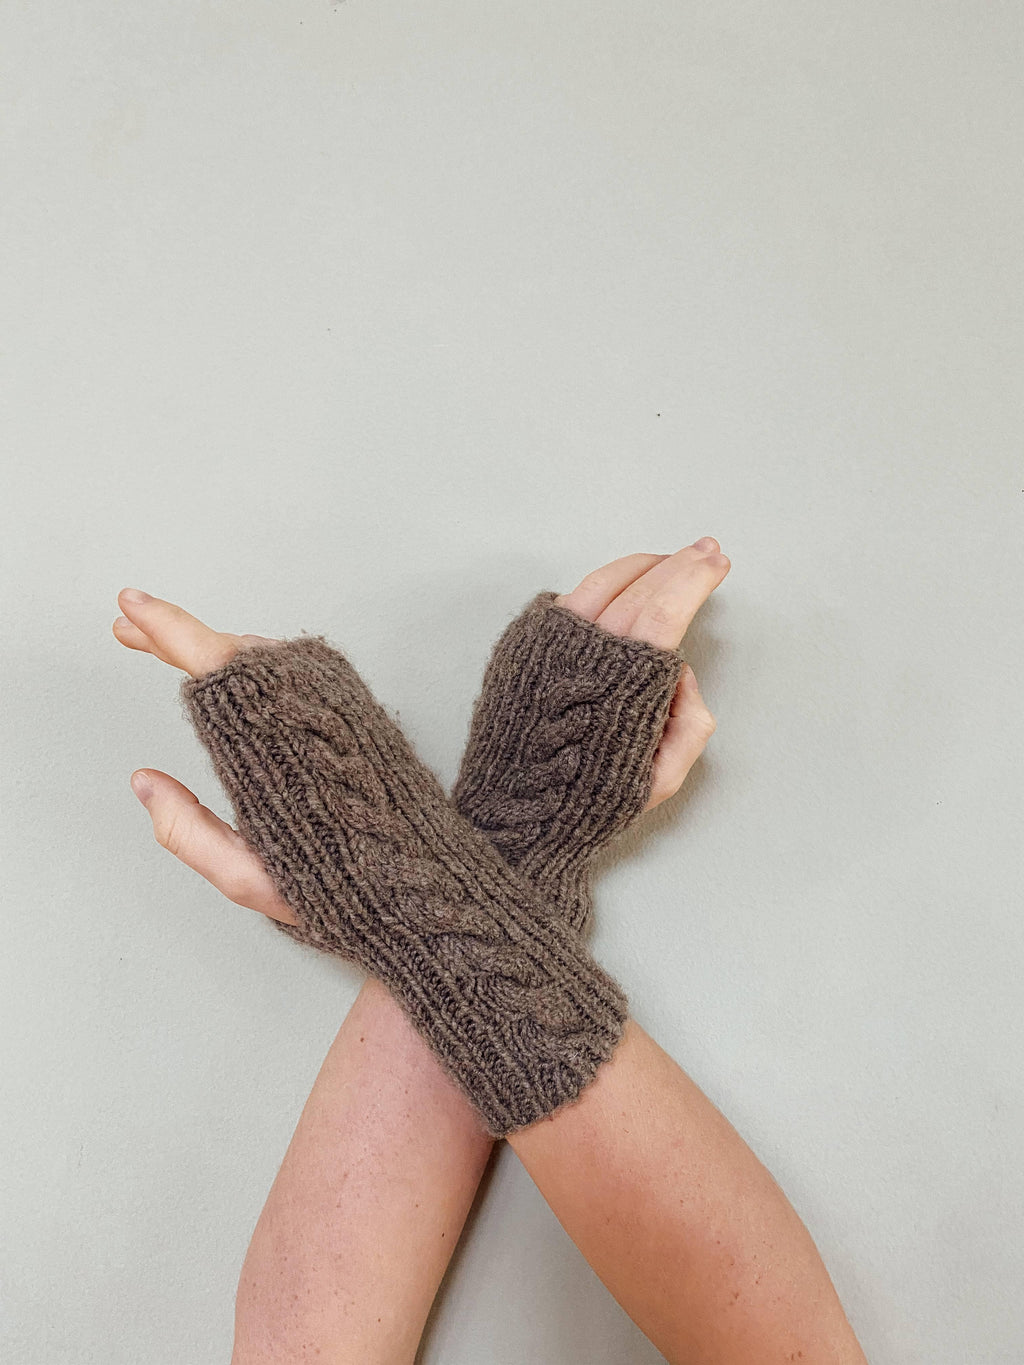 Twist Wrist Warmers - Handspun Yak Wool Wrist Warmers -  The Yak Wool Company